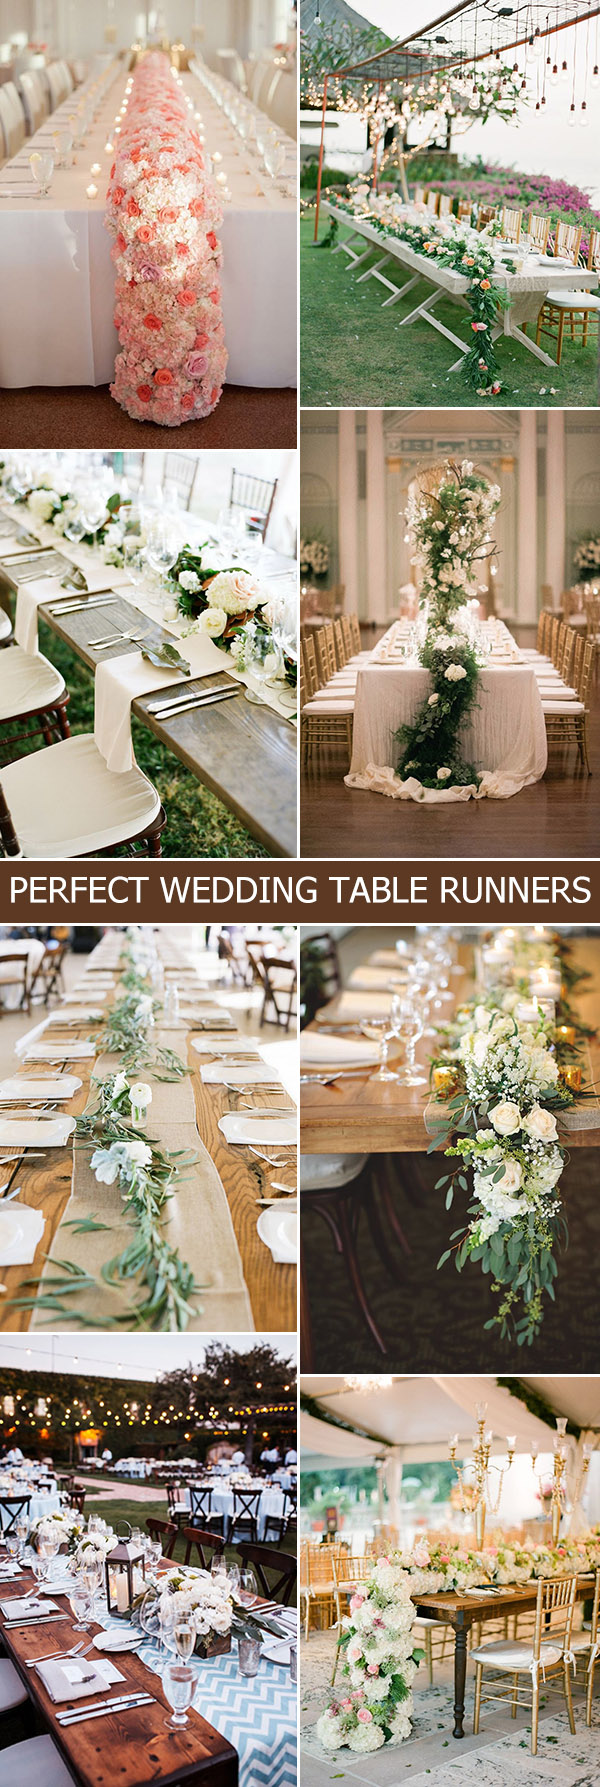 beautiful wedding table runners decoration ideas 2015 2016 trends